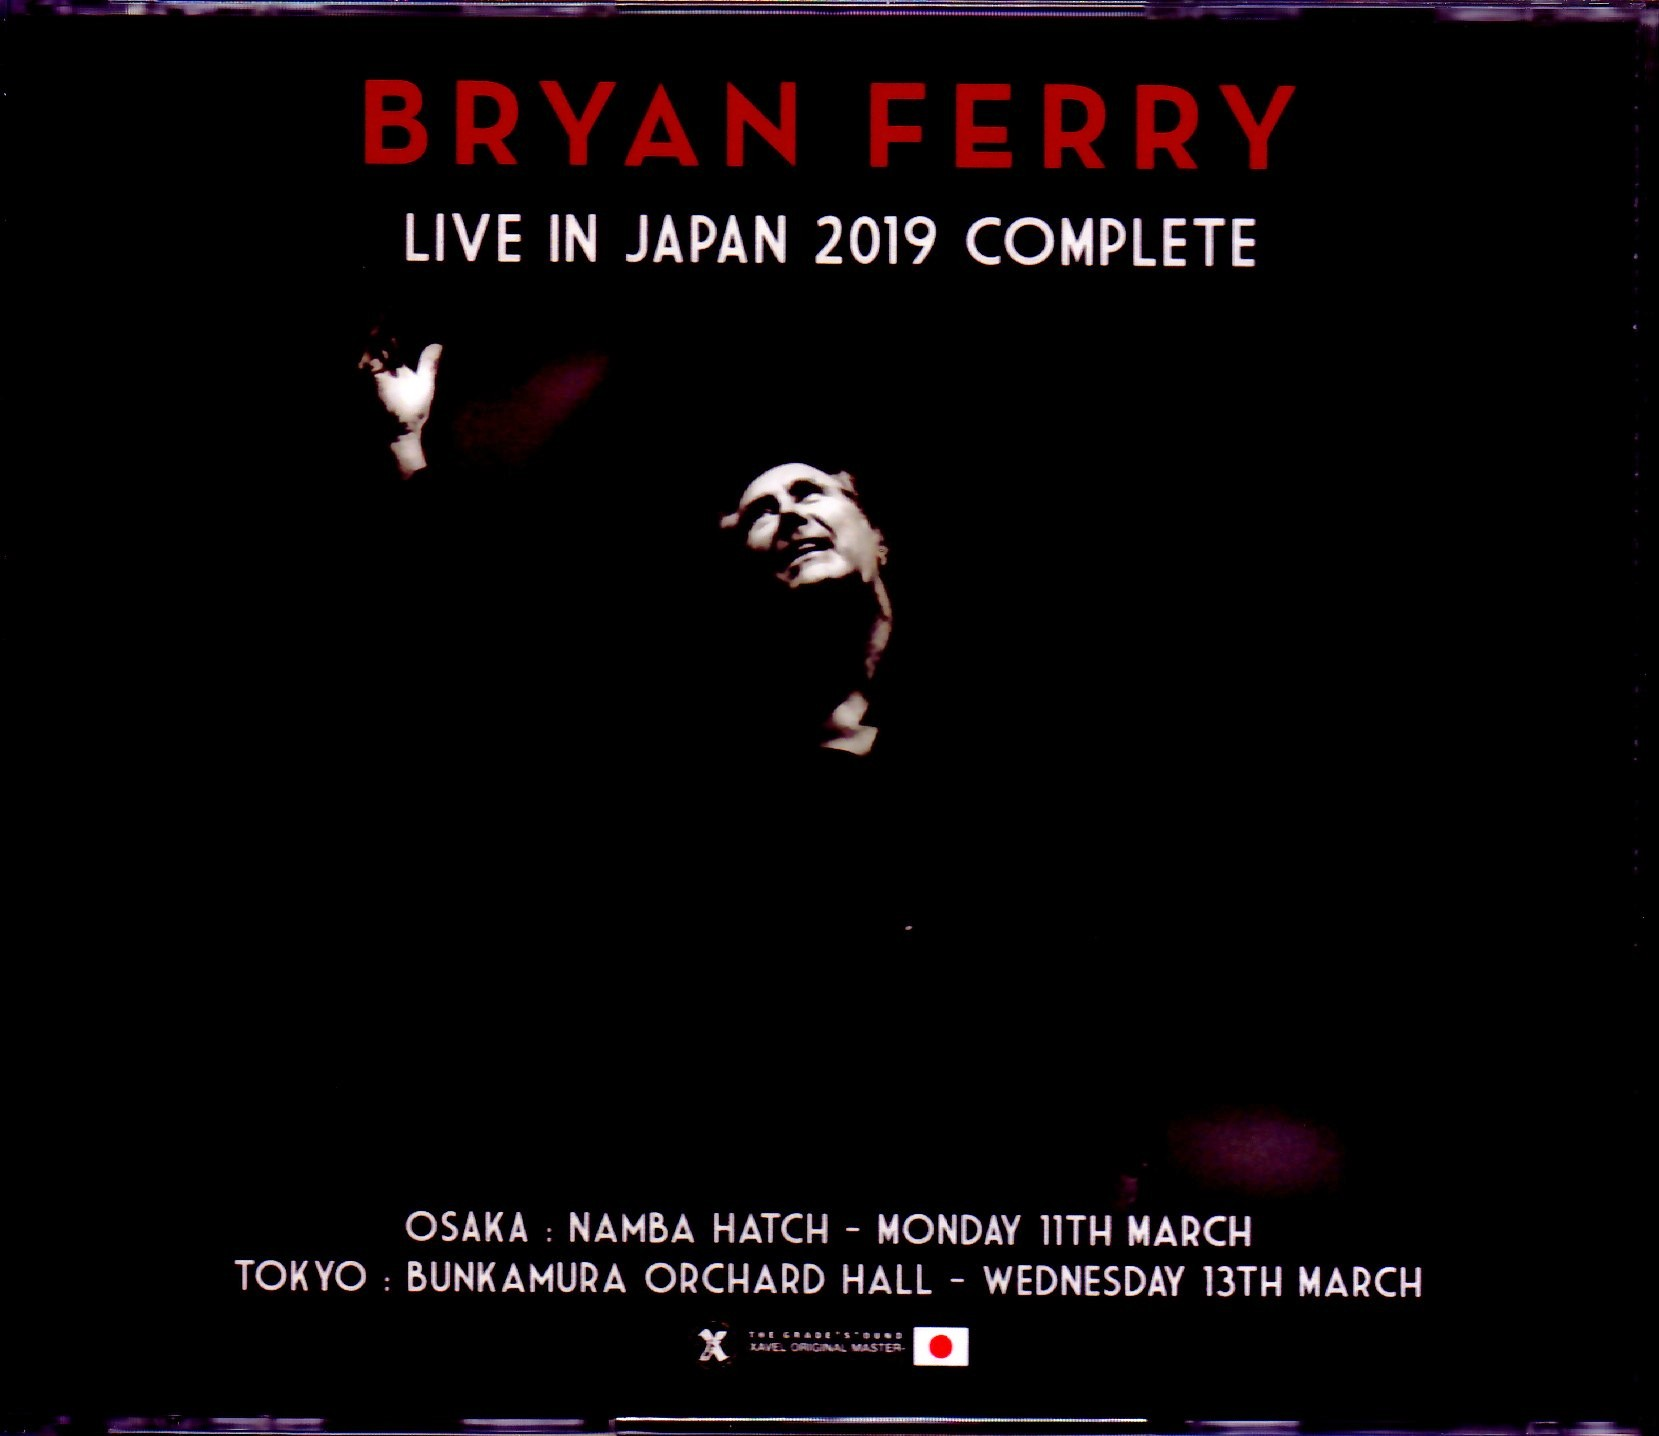 Bryan Ferry ブライアン・フェリー/Japan Tour 2019 Complete IEM Matrix Ver